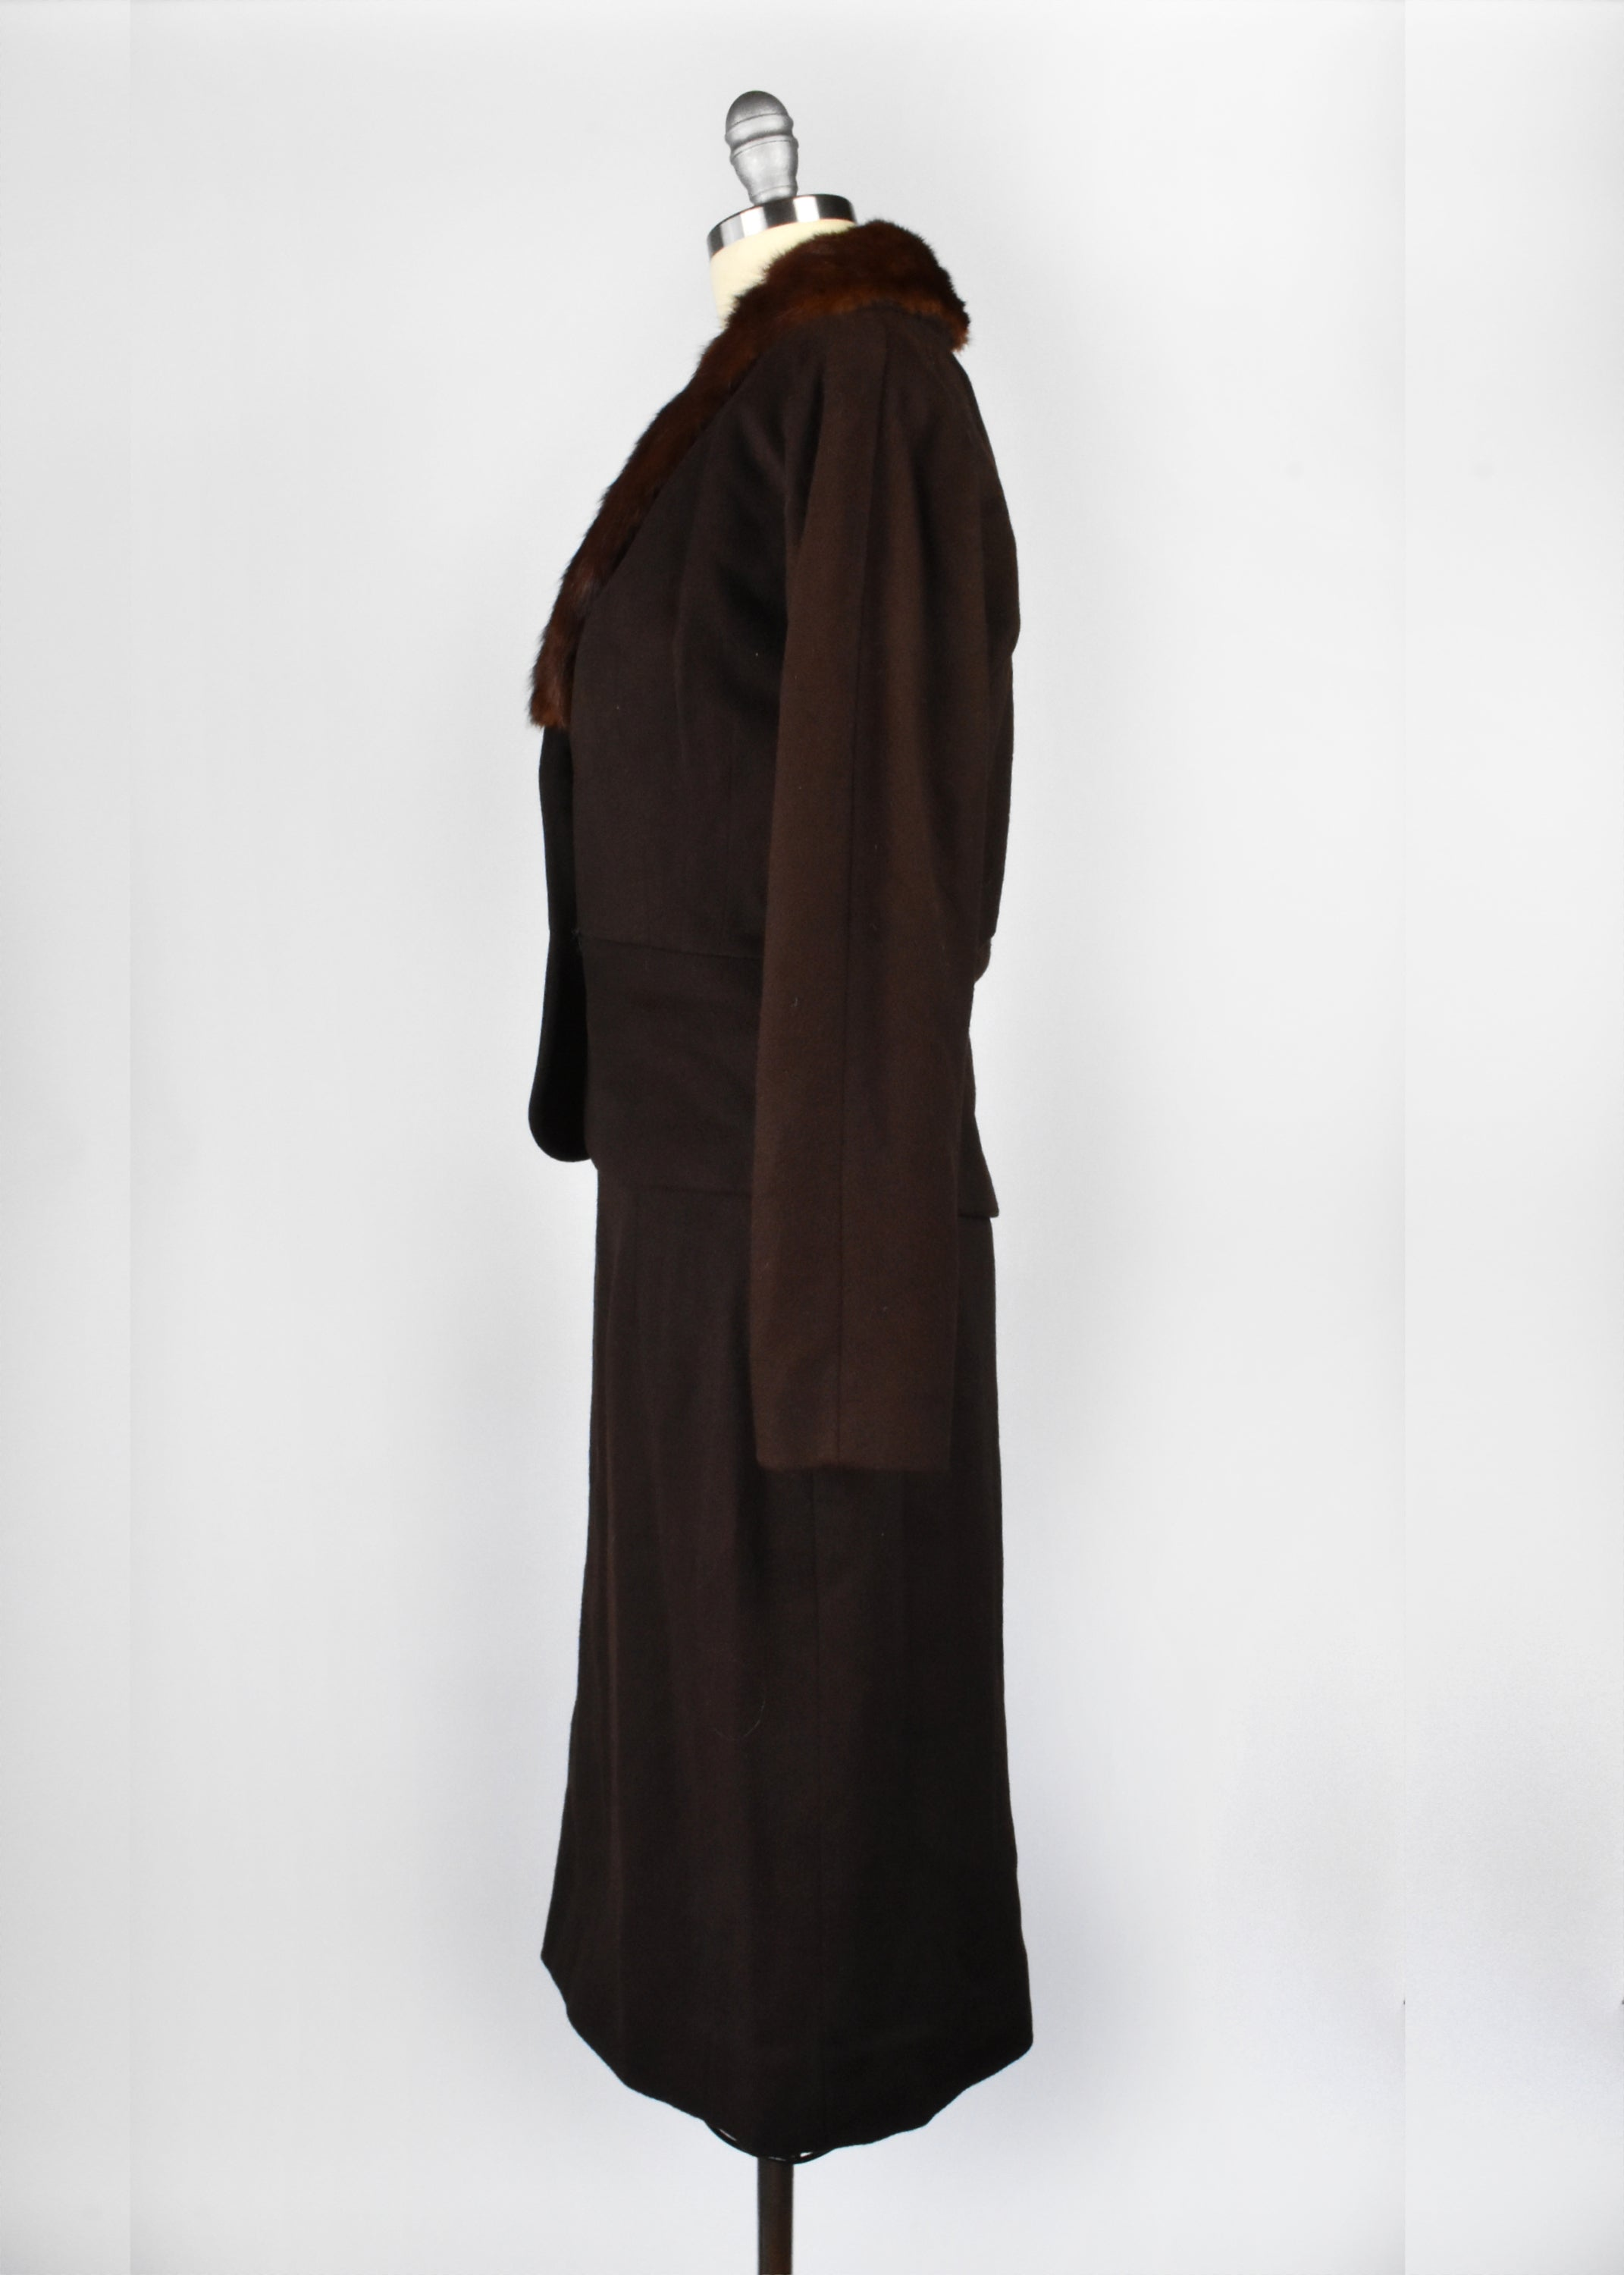 1950's 2-Piece Jacket and Skirt Suit with Mink Collar